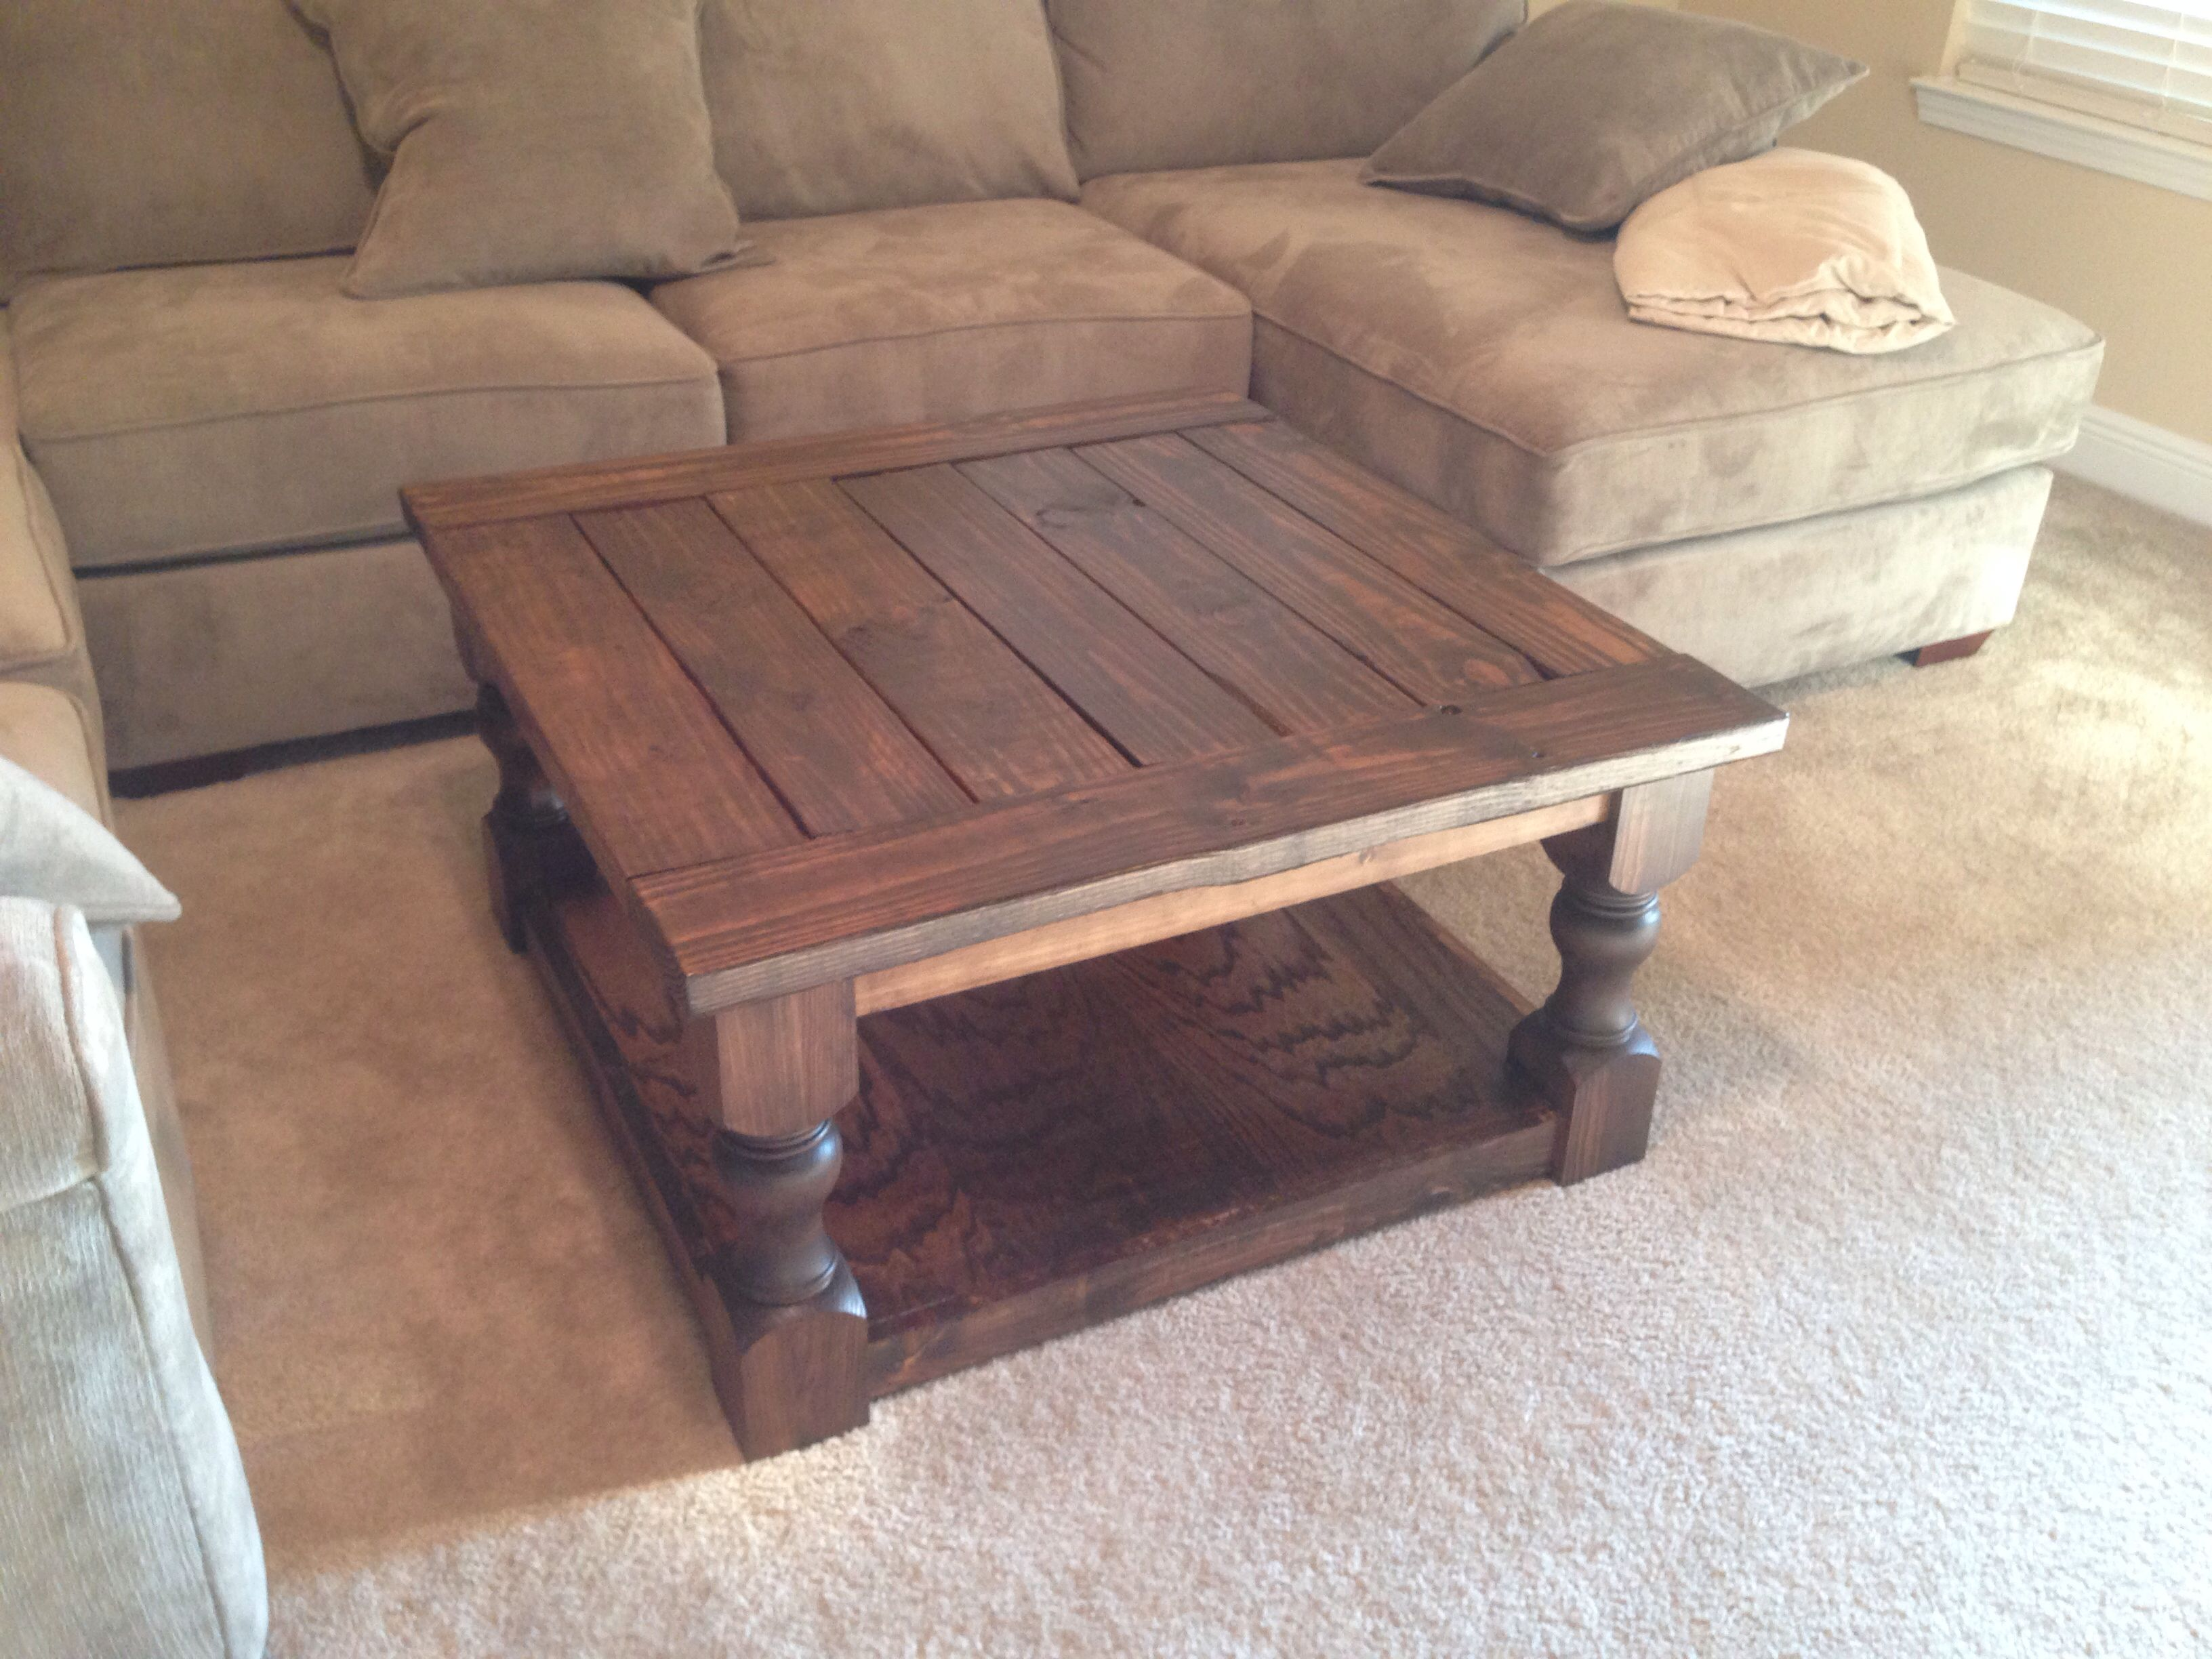 Superieur DIY Coffee Table With Construction Grade Lumber From Lowes